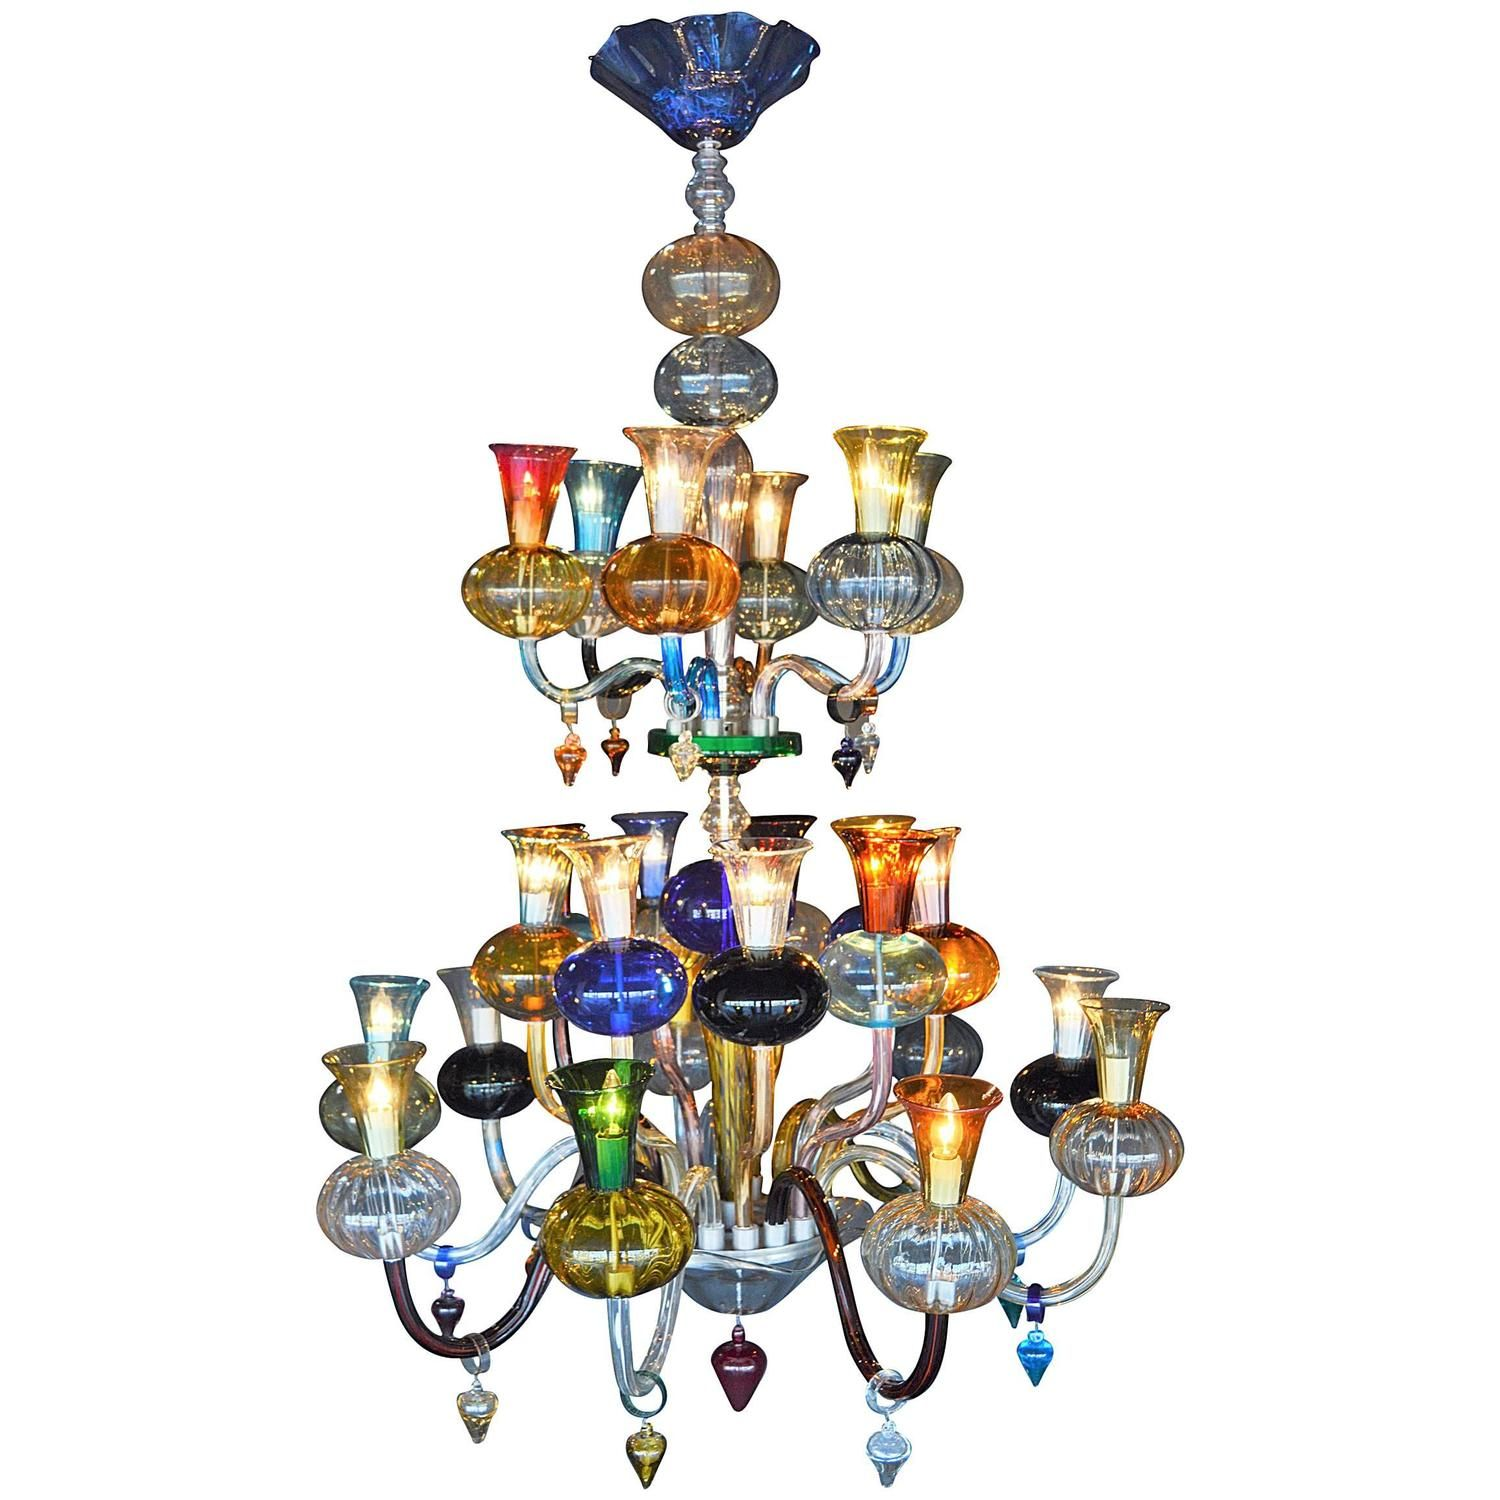 Multicolored hand blown glass chandelier from a unique collection multicolored hand blown glass chandelier from a unique collection of antique and modern chandeliers and aloadofball Images